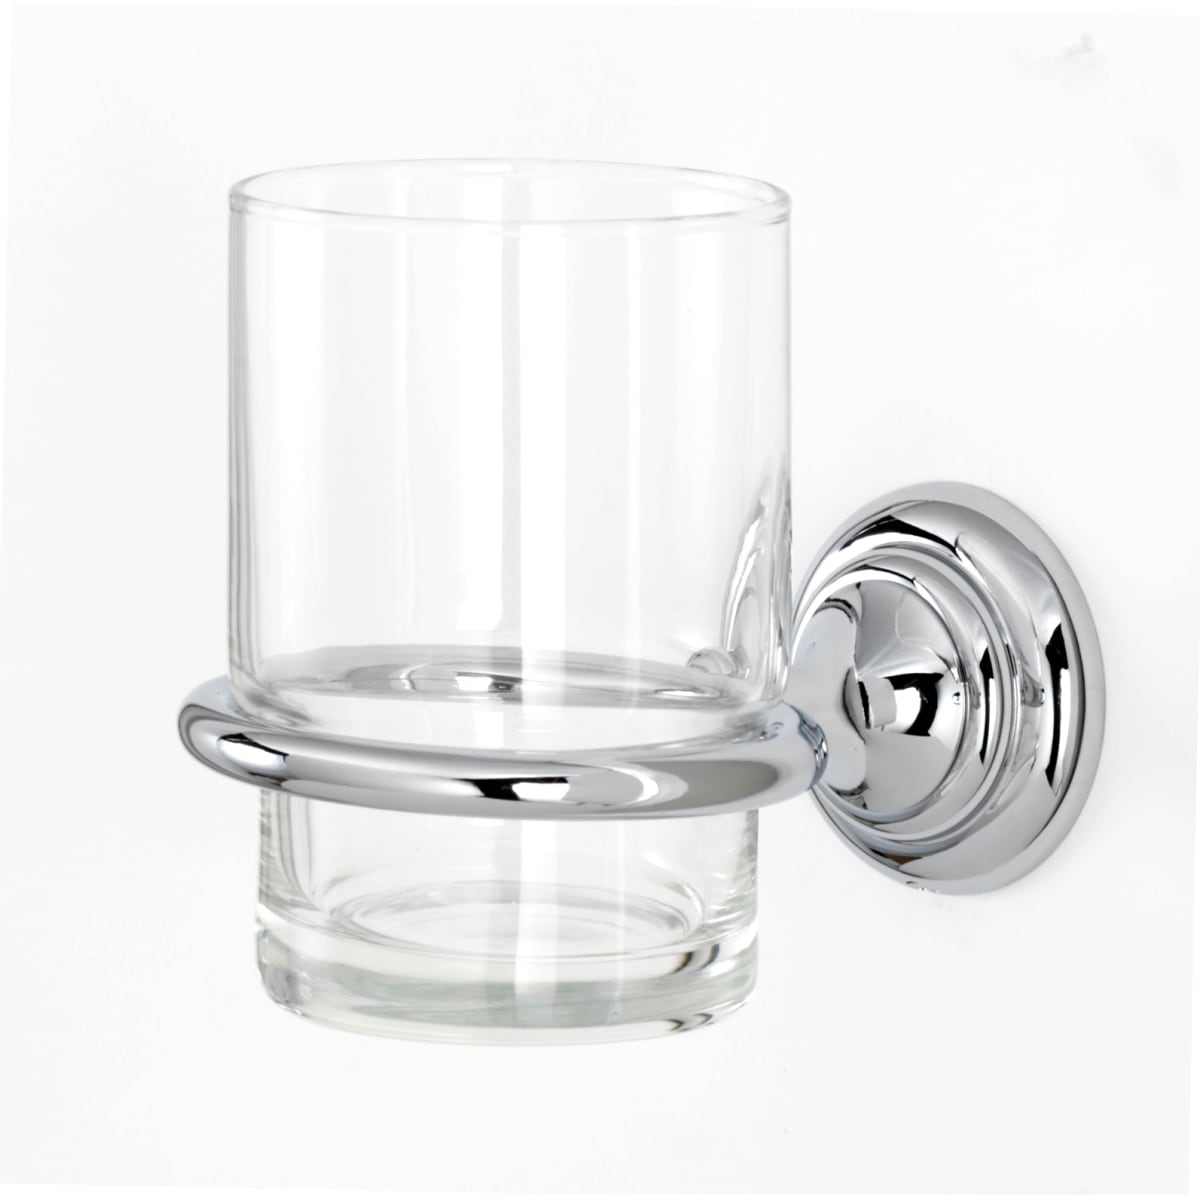 Alno Charlie's Wall Mounted Glass Tumbler with Brass Mounting Bracket